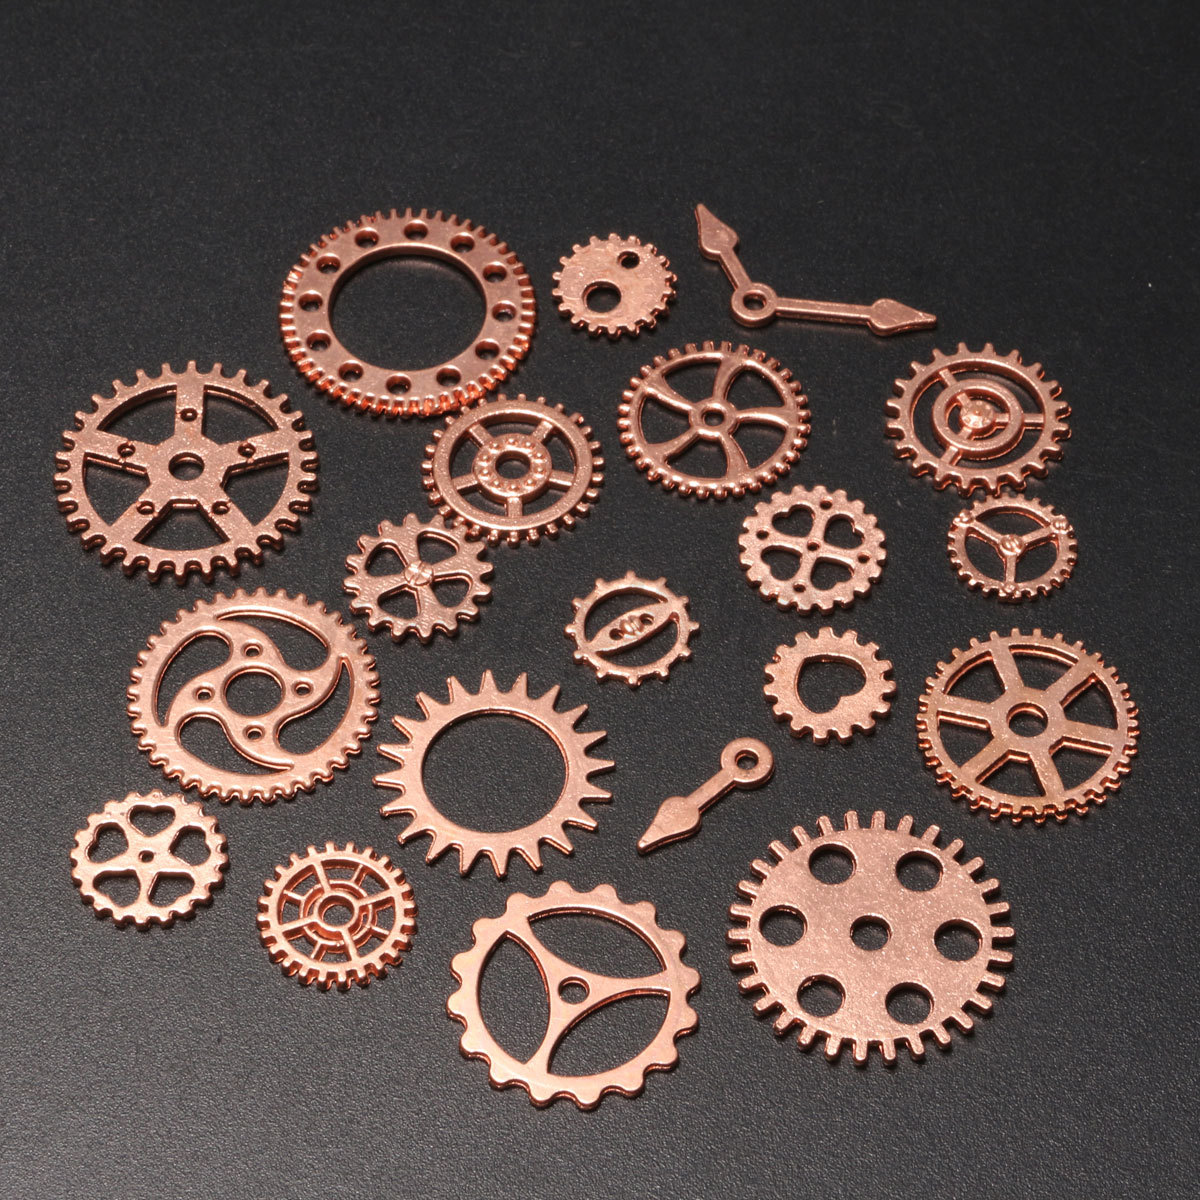 2 Of 8 20PCS Vintage Steampunk Watch Clock Parts Gear Cogs Wheels Jewelry Crafts DIY